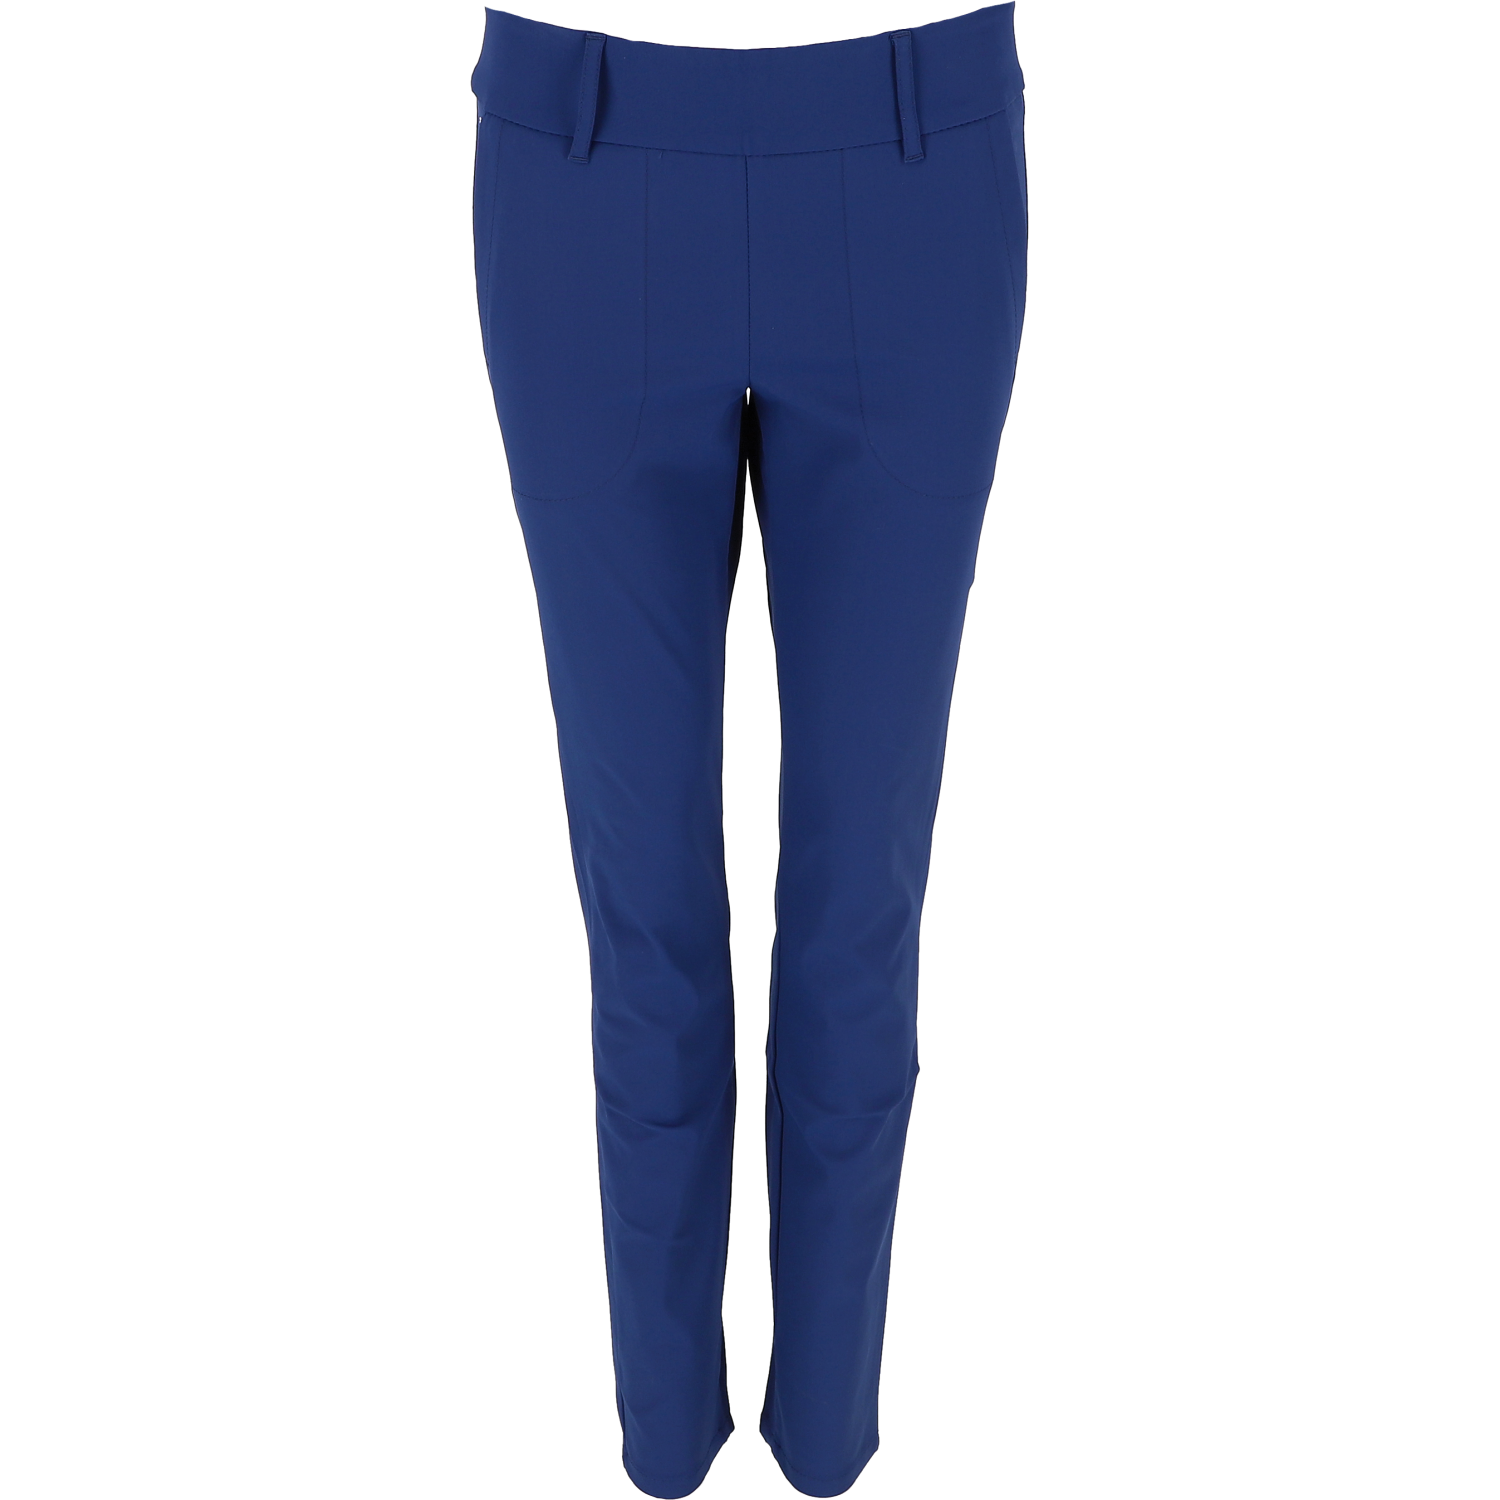 LUCY Hose - 3xDRY Cooler, navy